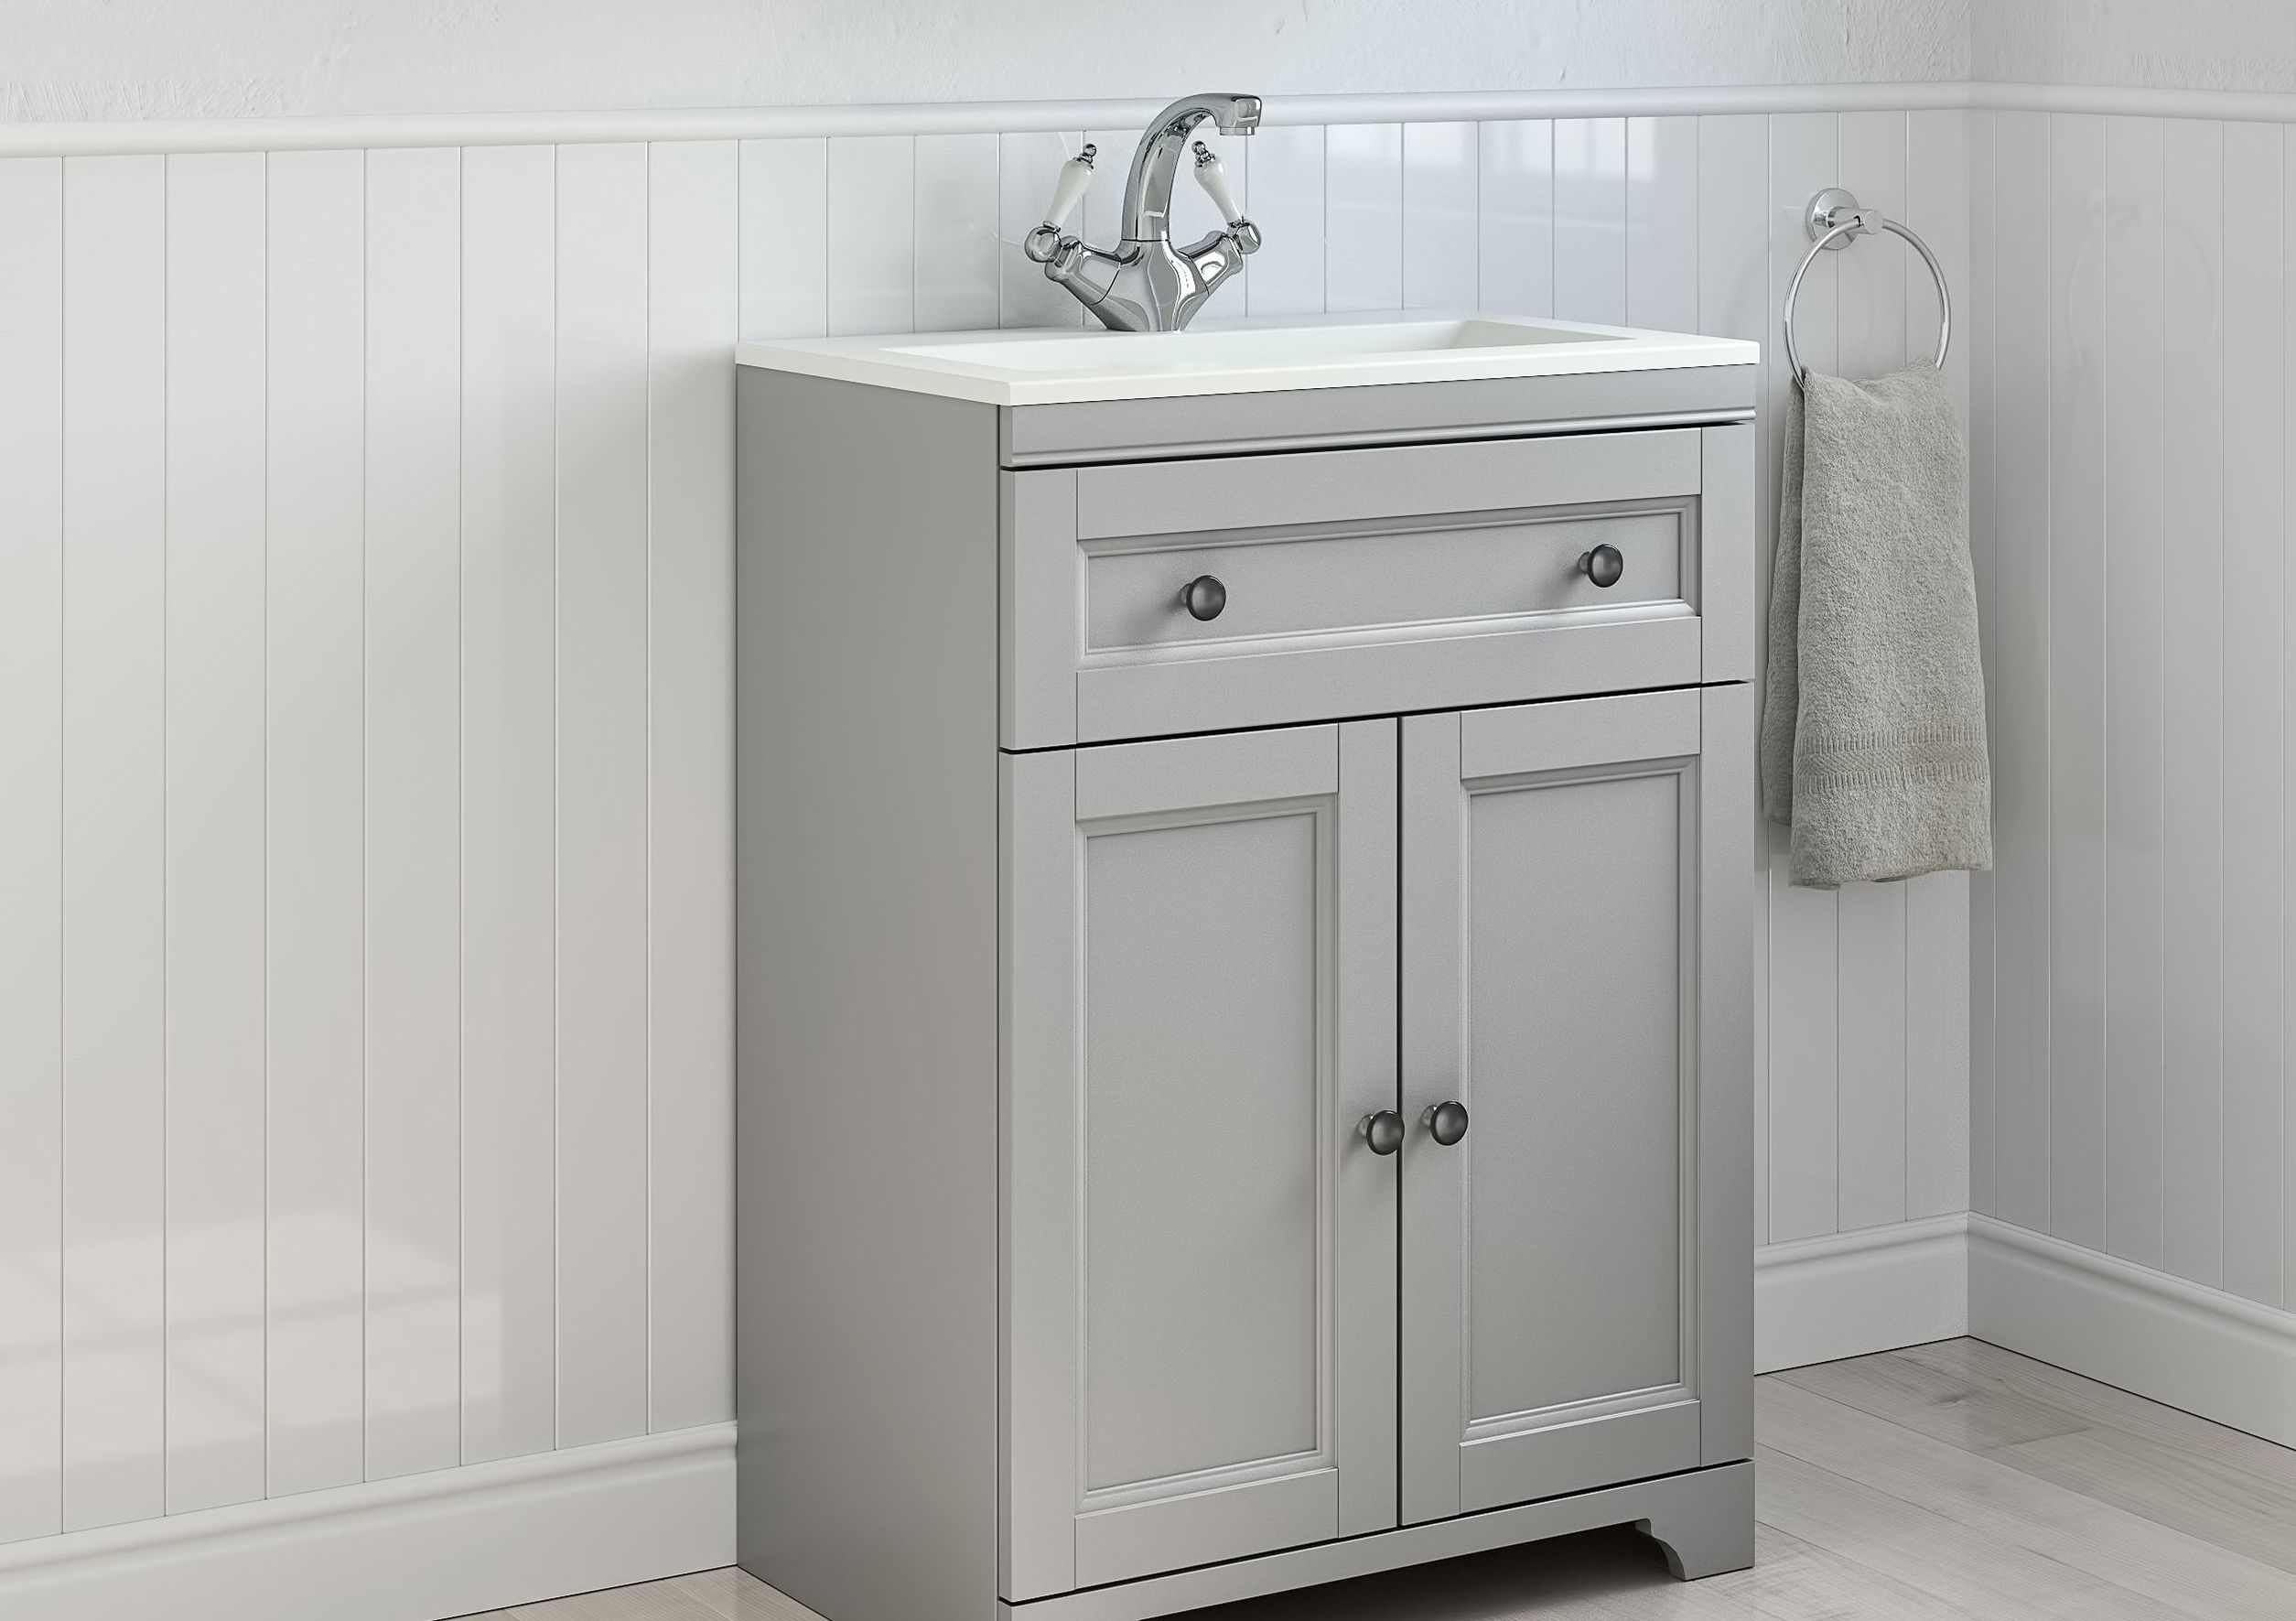 chadleigh bathroom furniture